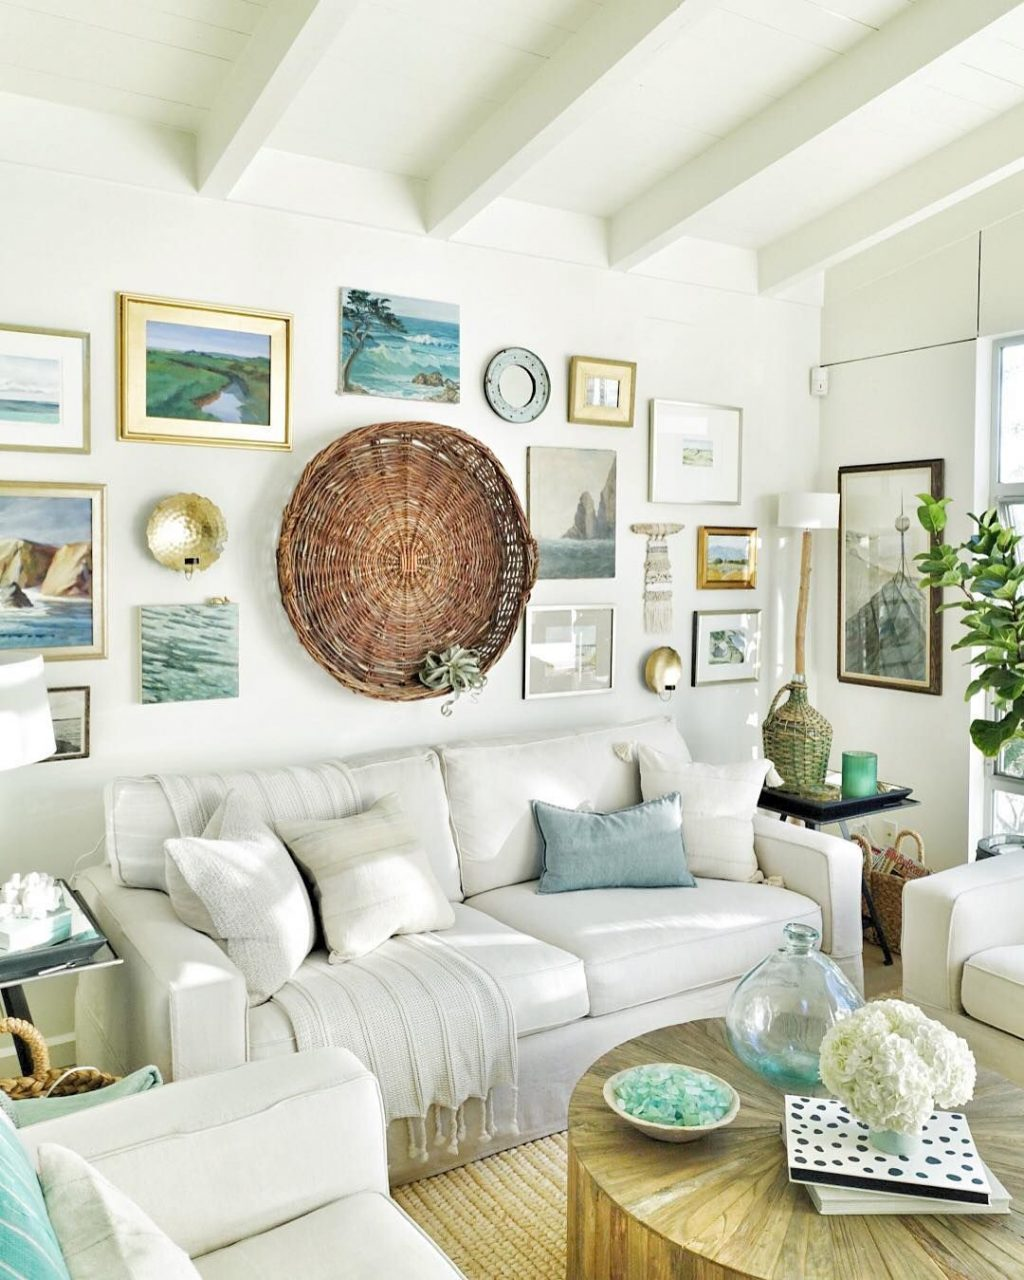 A Cozy Beach Cottage Living Room With A Seaside Inspired Gallery